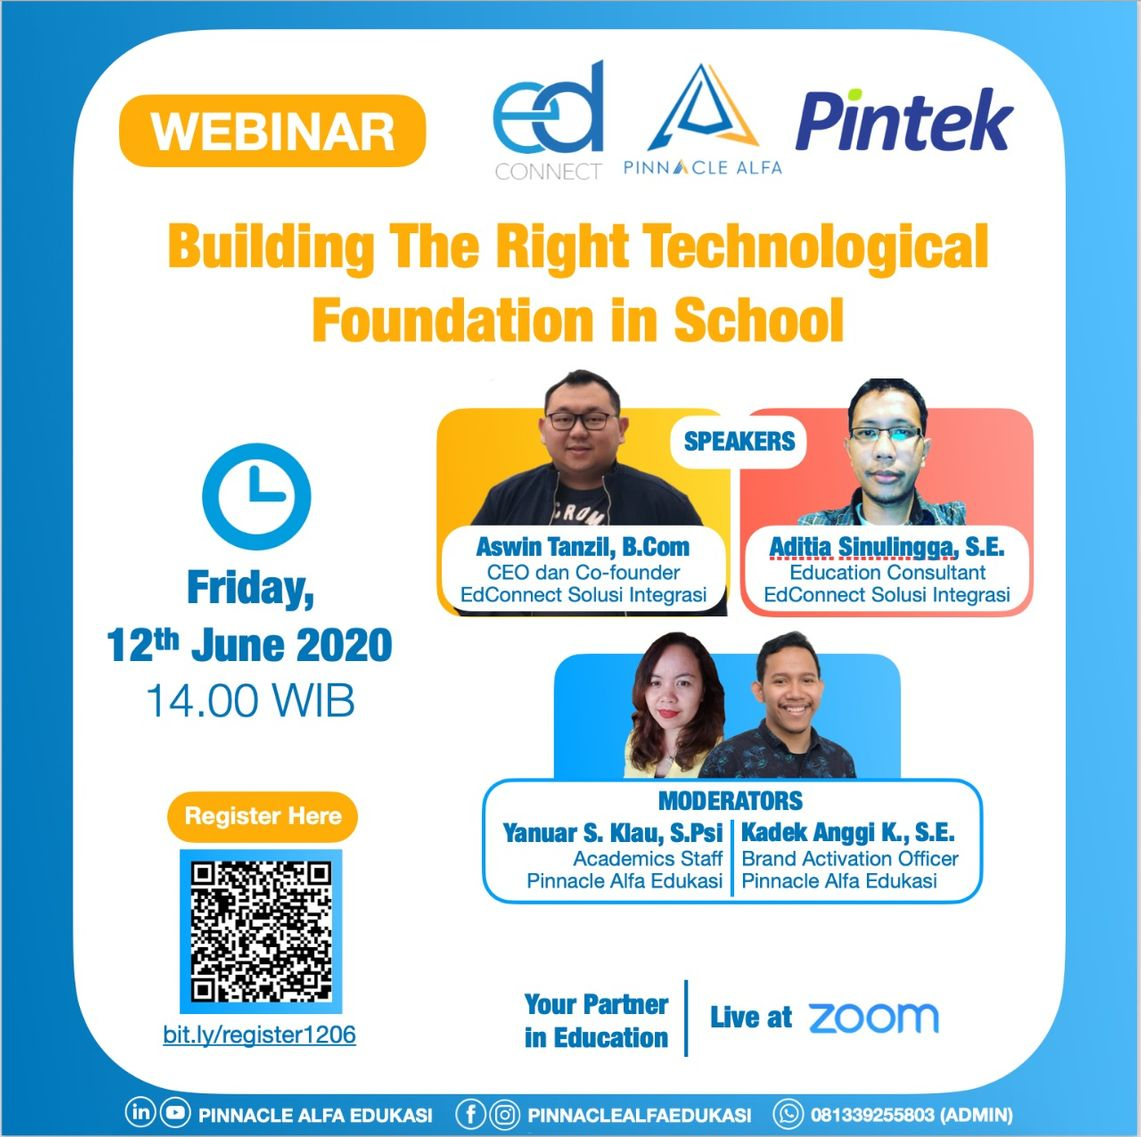 Building The Right Technological Foundation in School